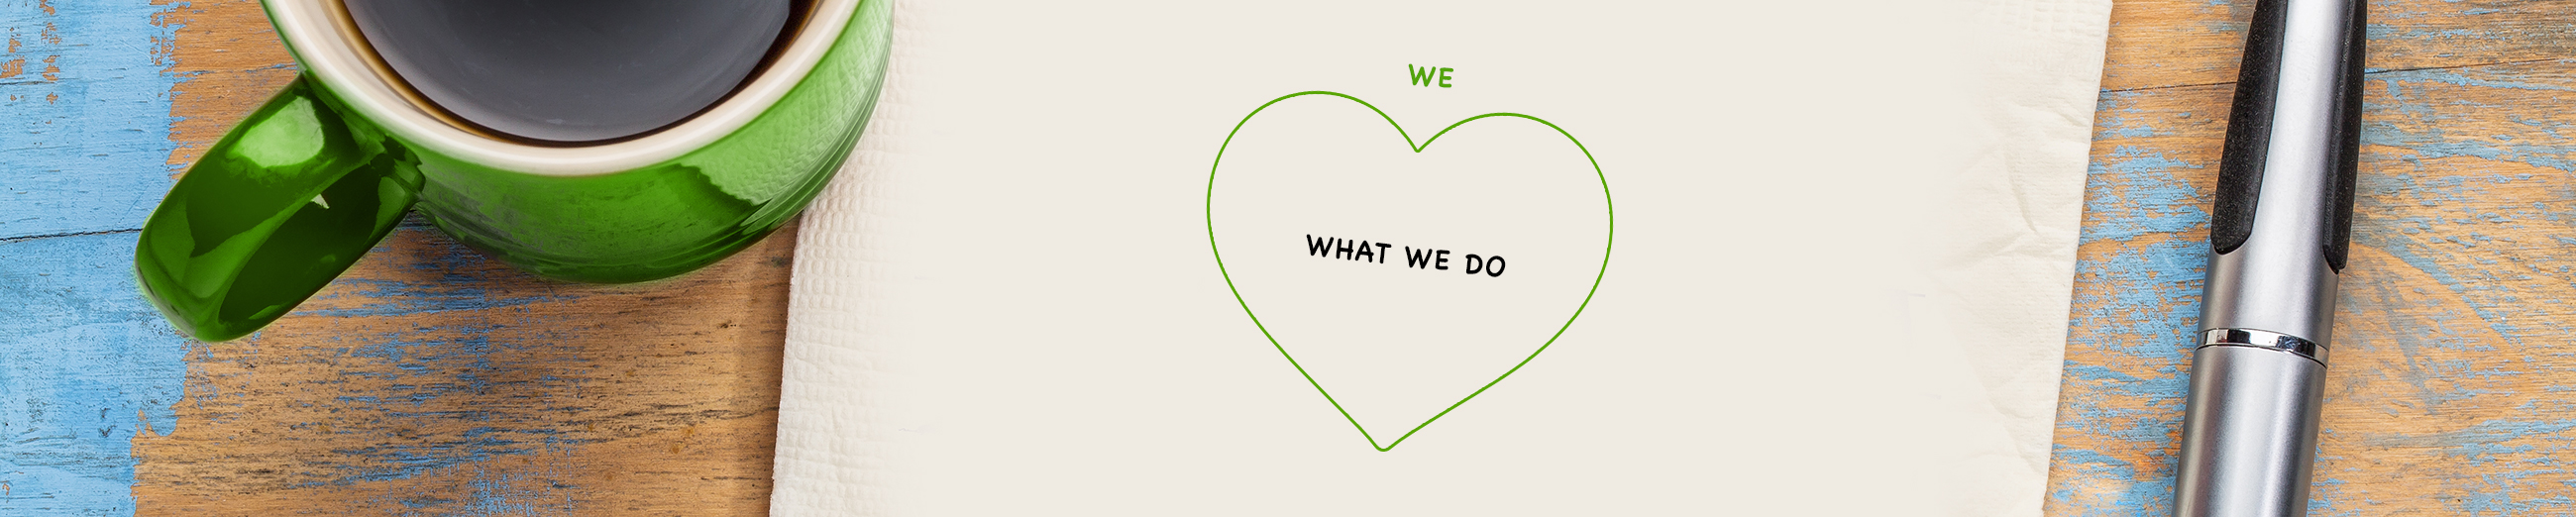 we_Love_what_we_do